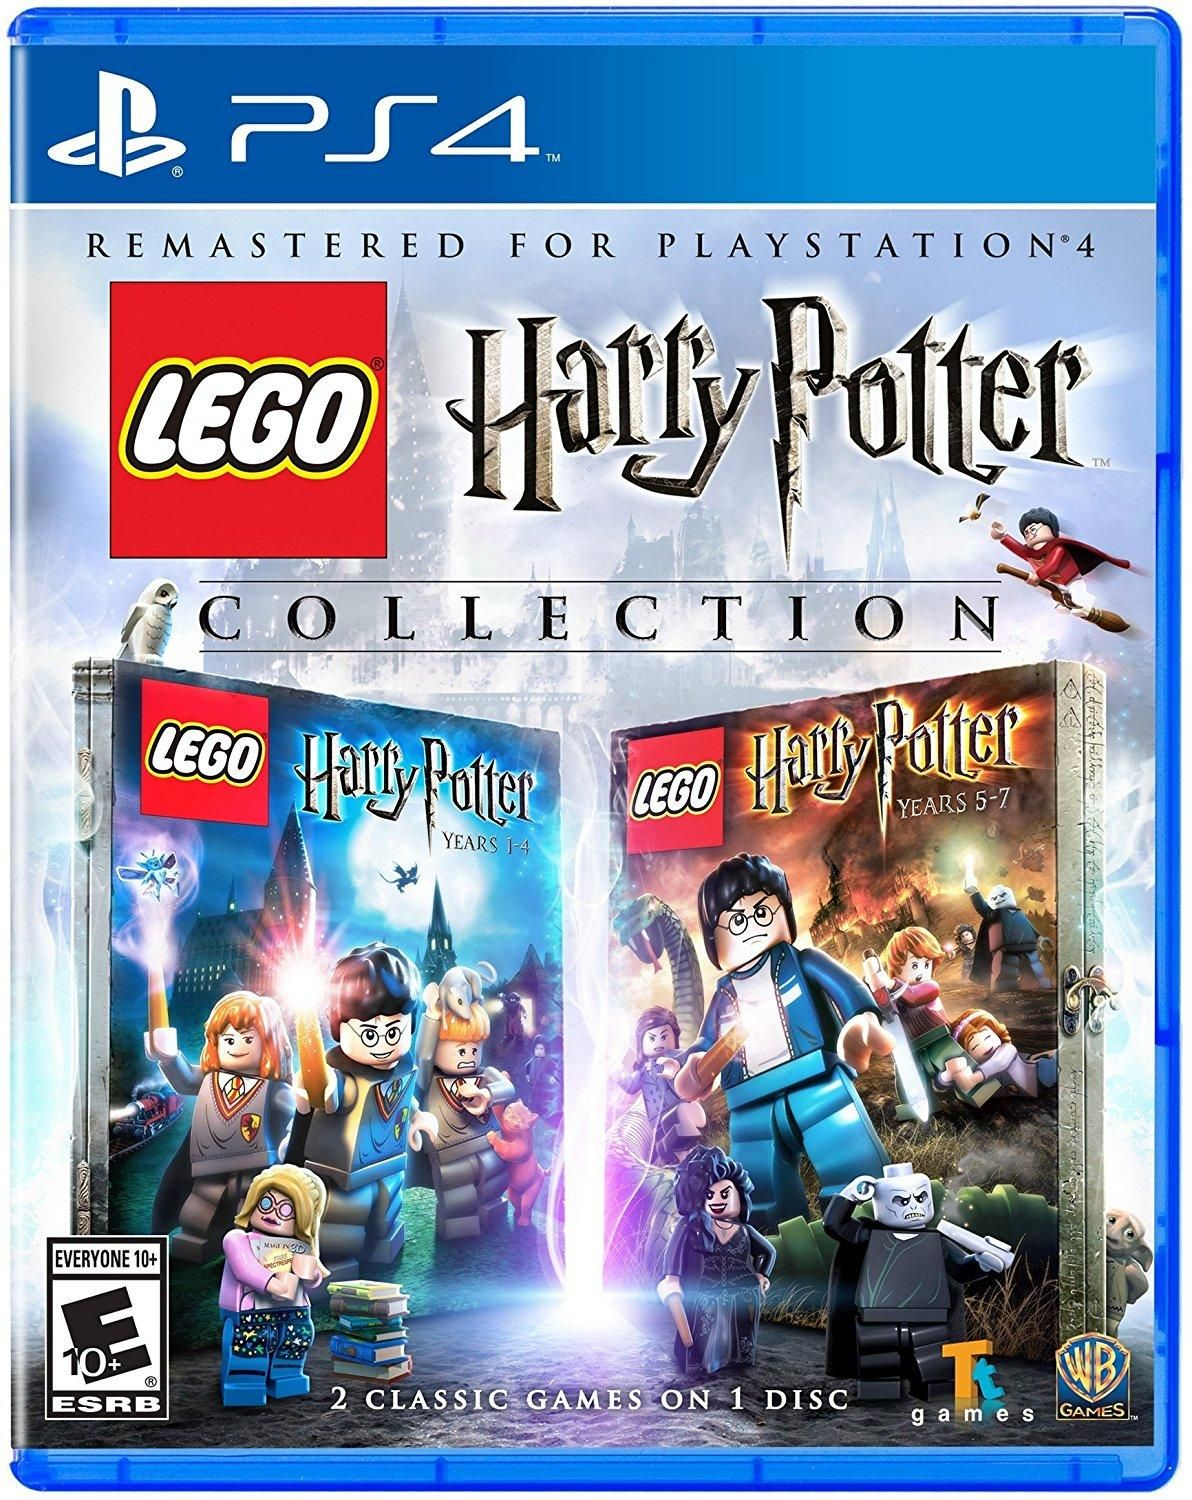 Amazoncom LEGO Harry Potter Collection PlayStation Video - Ps4 spiele minecraft amazon